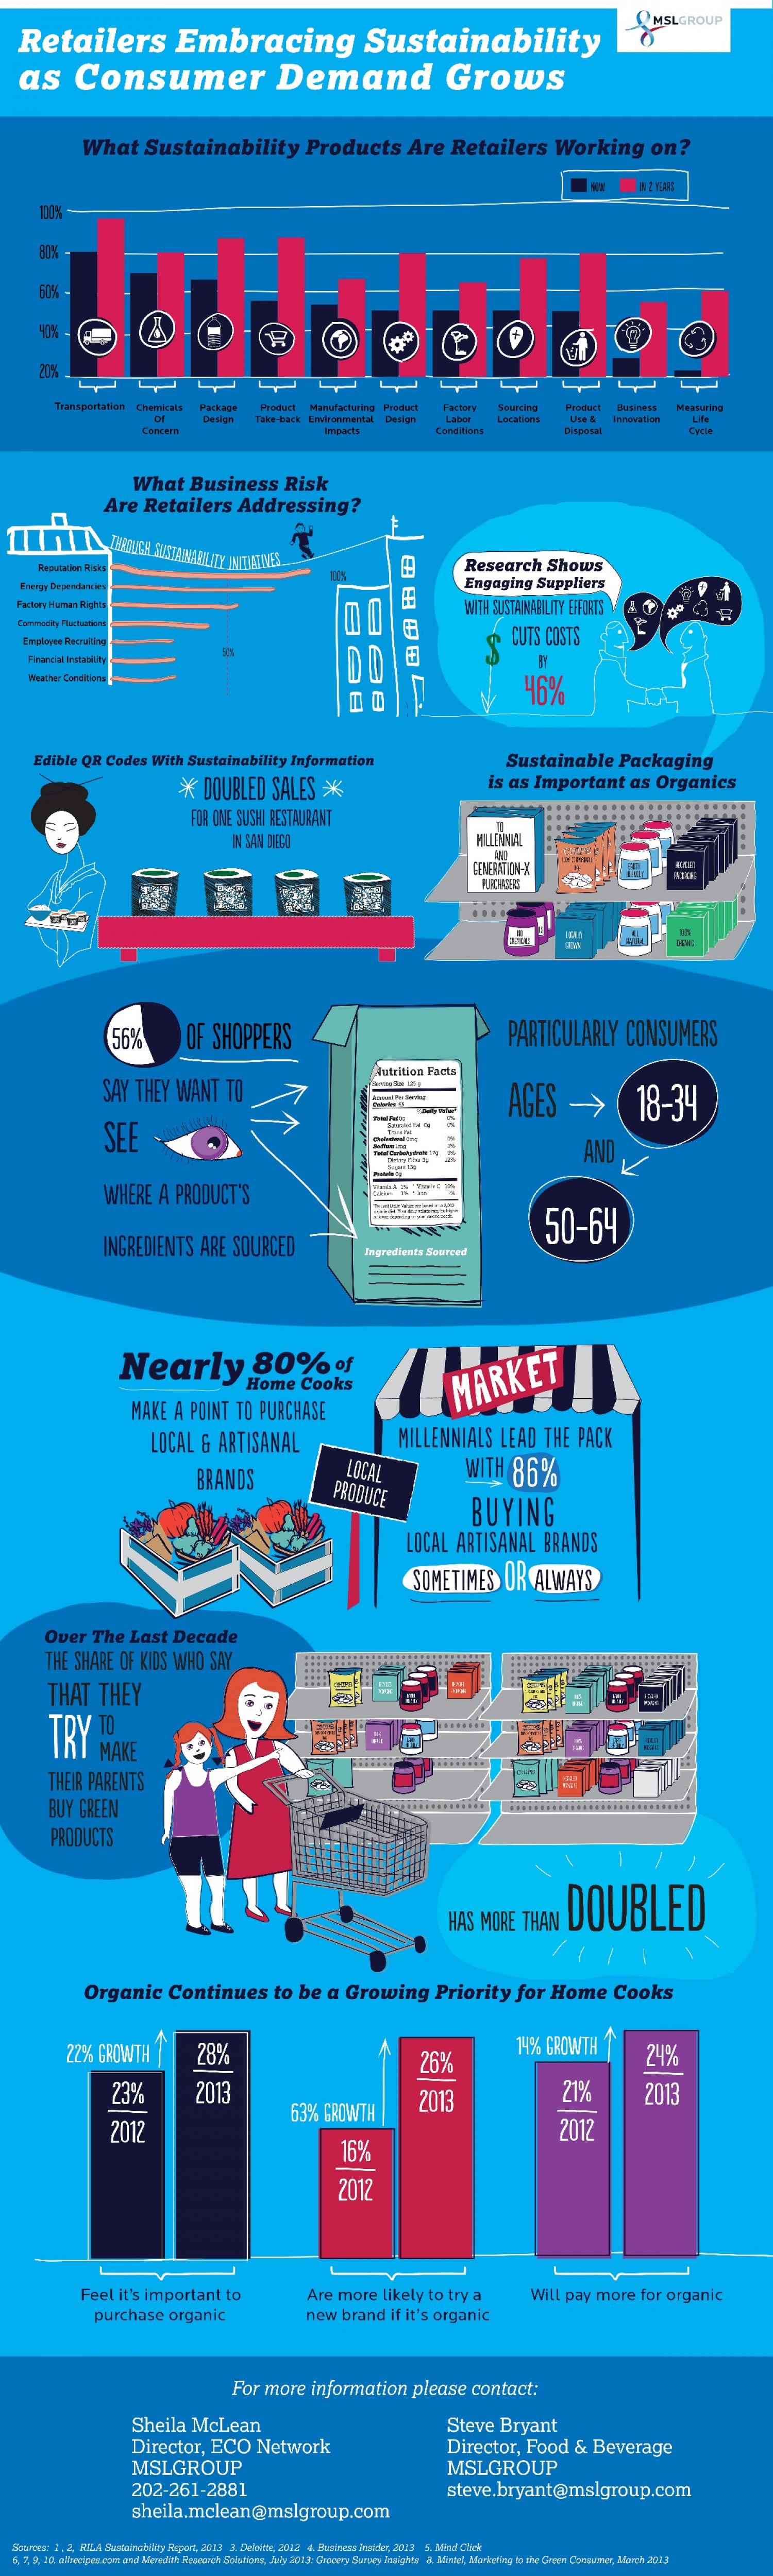 Retailers Embracing Sustainability as Consumer Demand Grows Infographic